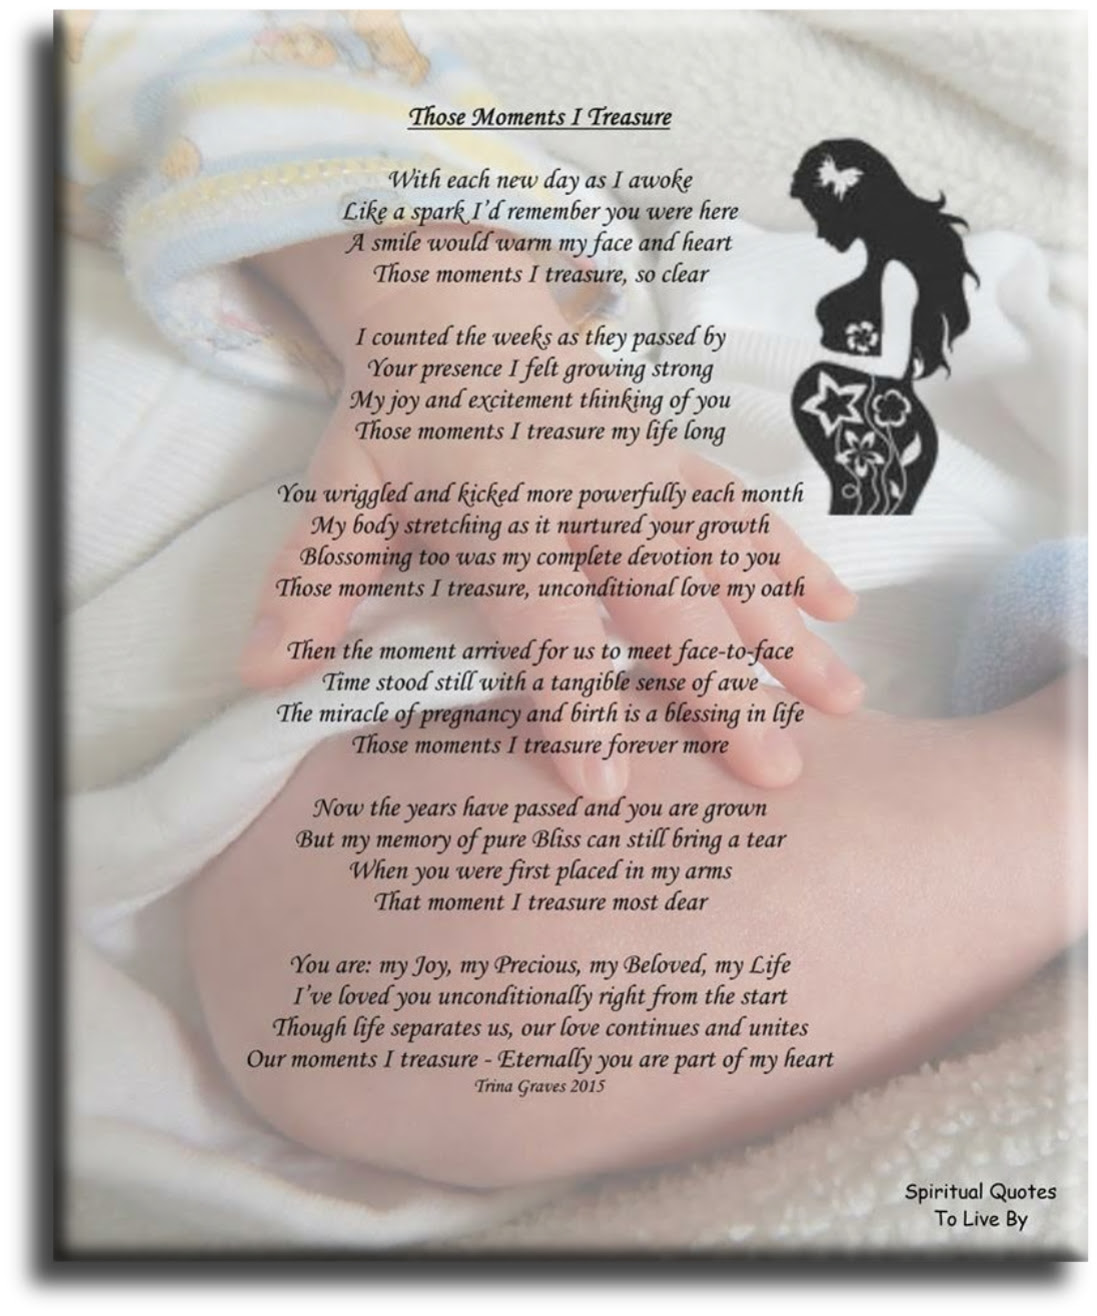 Those moments I treasure pregnancy poem by Trina Graves Spiritual Quotes To Live